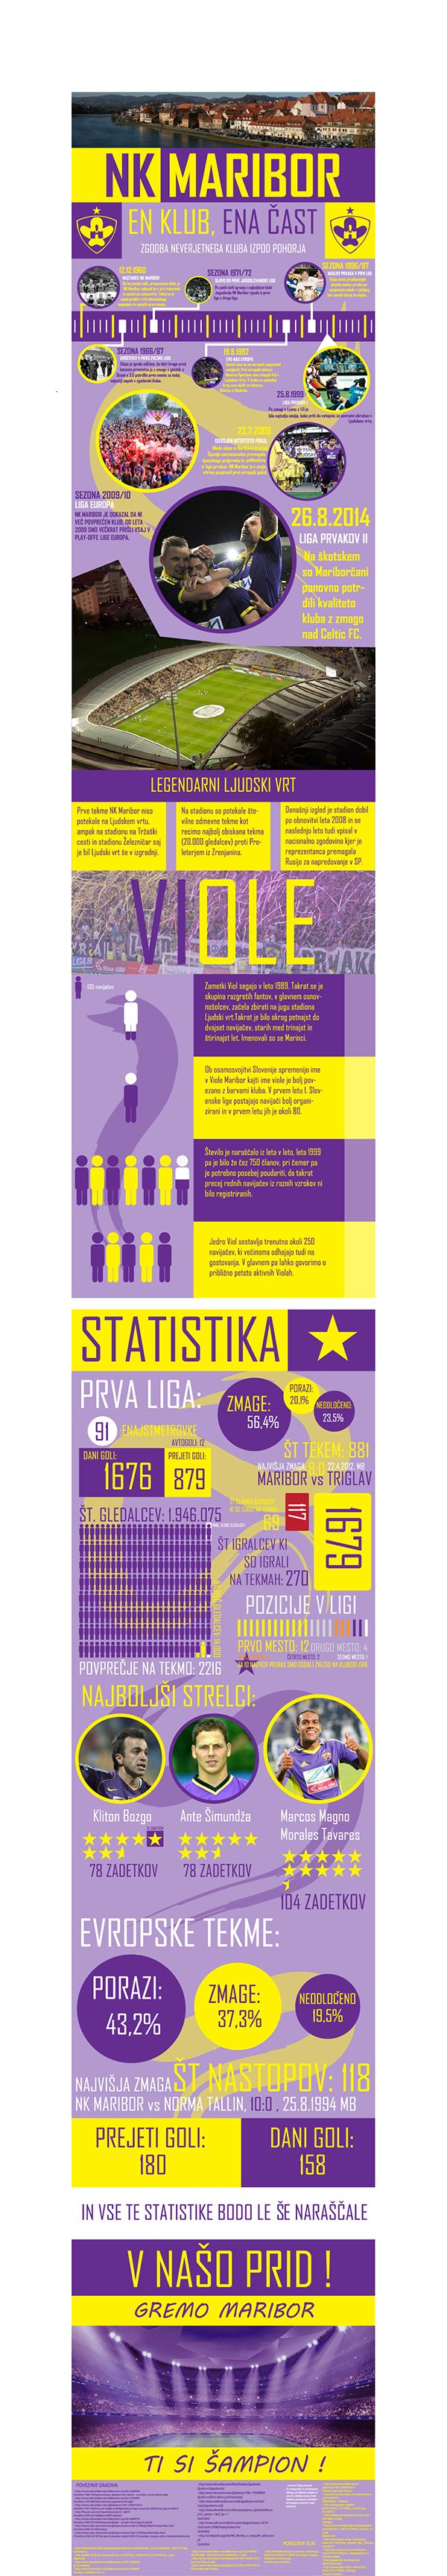 Infographic- NK Maribor on Behance: A short infographic i did on my home football team when they advanced to the champions leage.